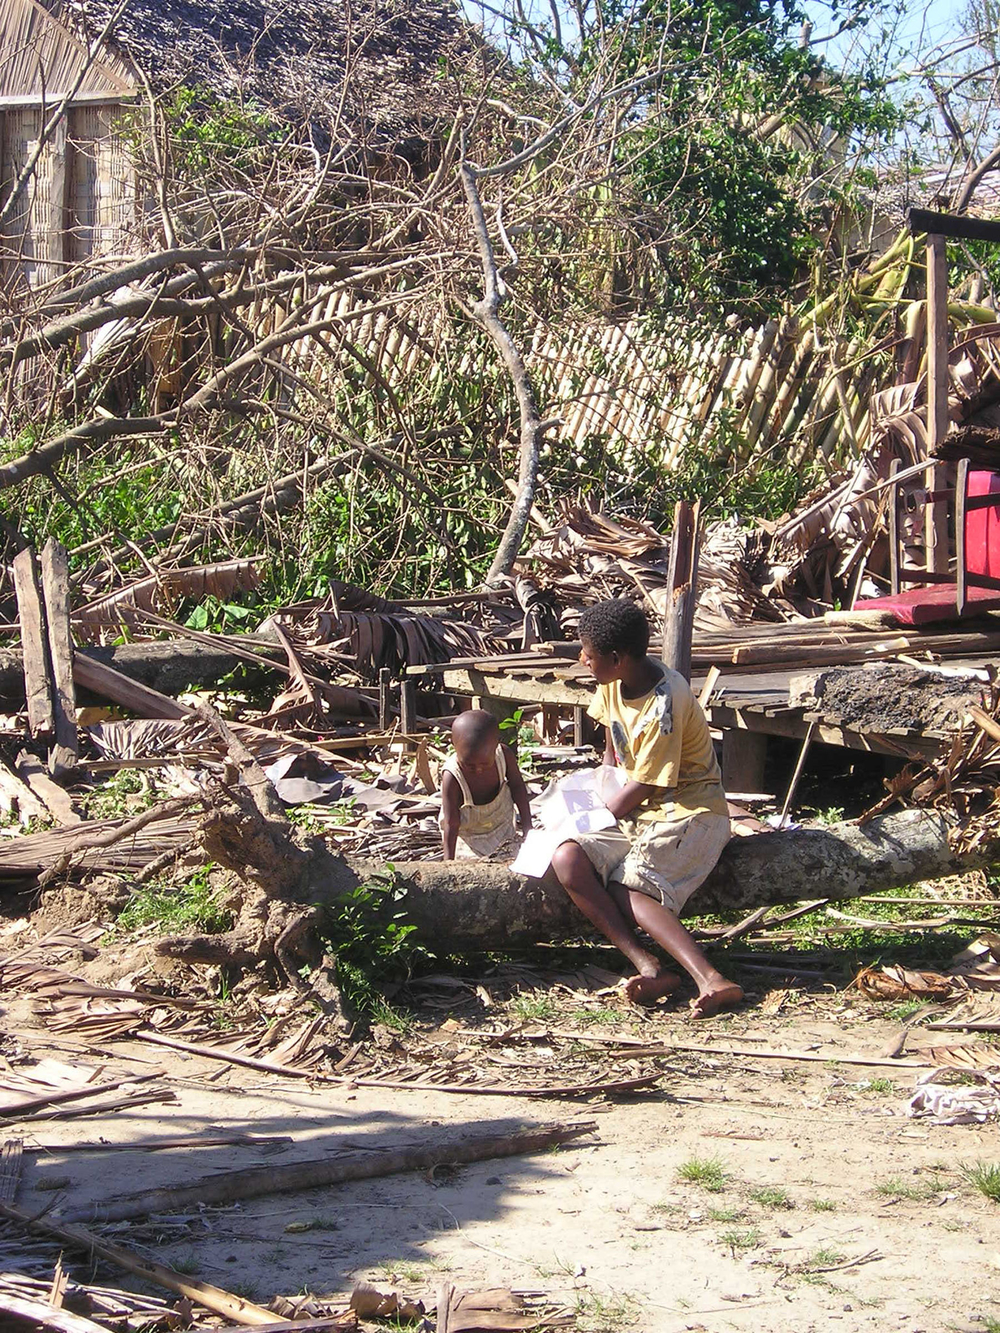 Cyclone Giovanna destroyed 70 percent of homes in Brickaville, on the east coast of Madagascar